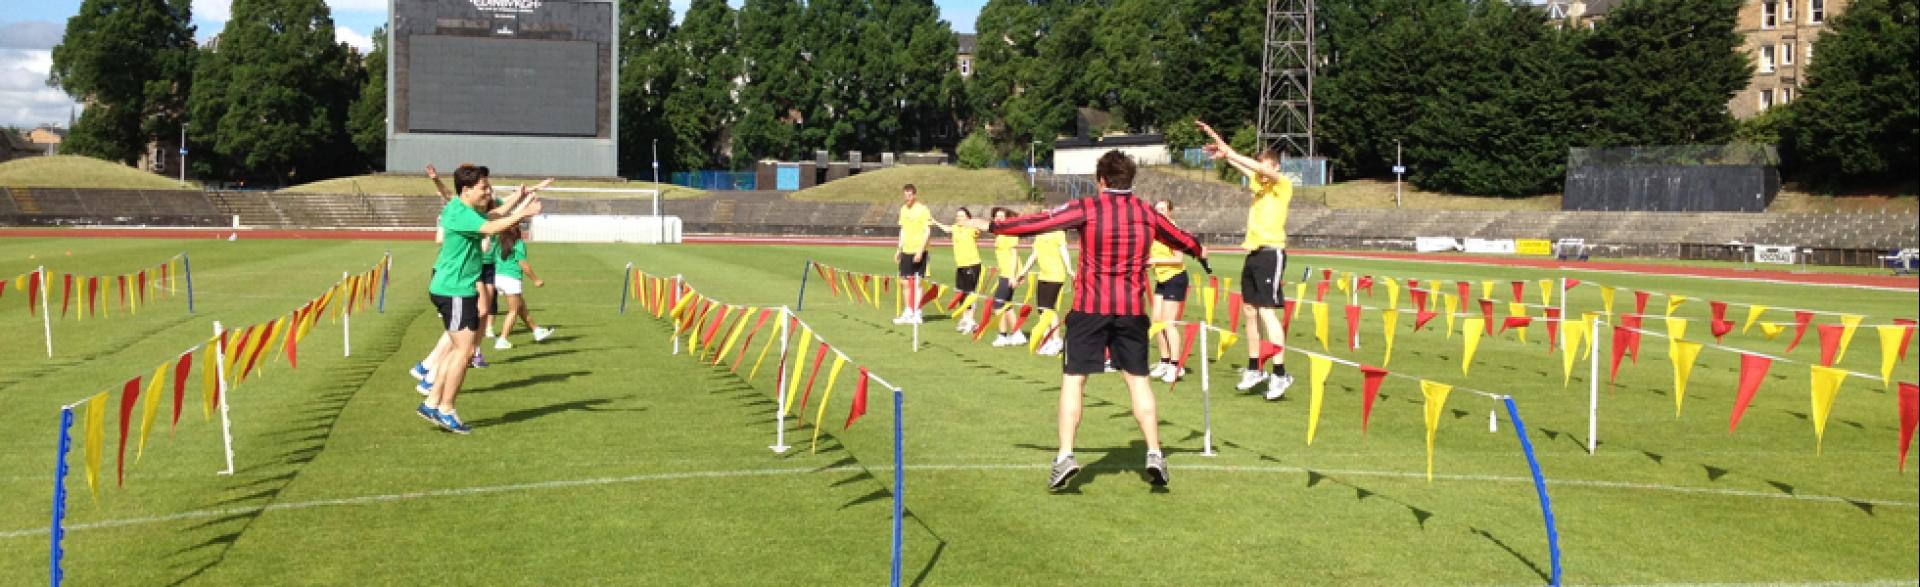 Summer Sports Day, Outdoor Team Building, Edinburgh July 2014